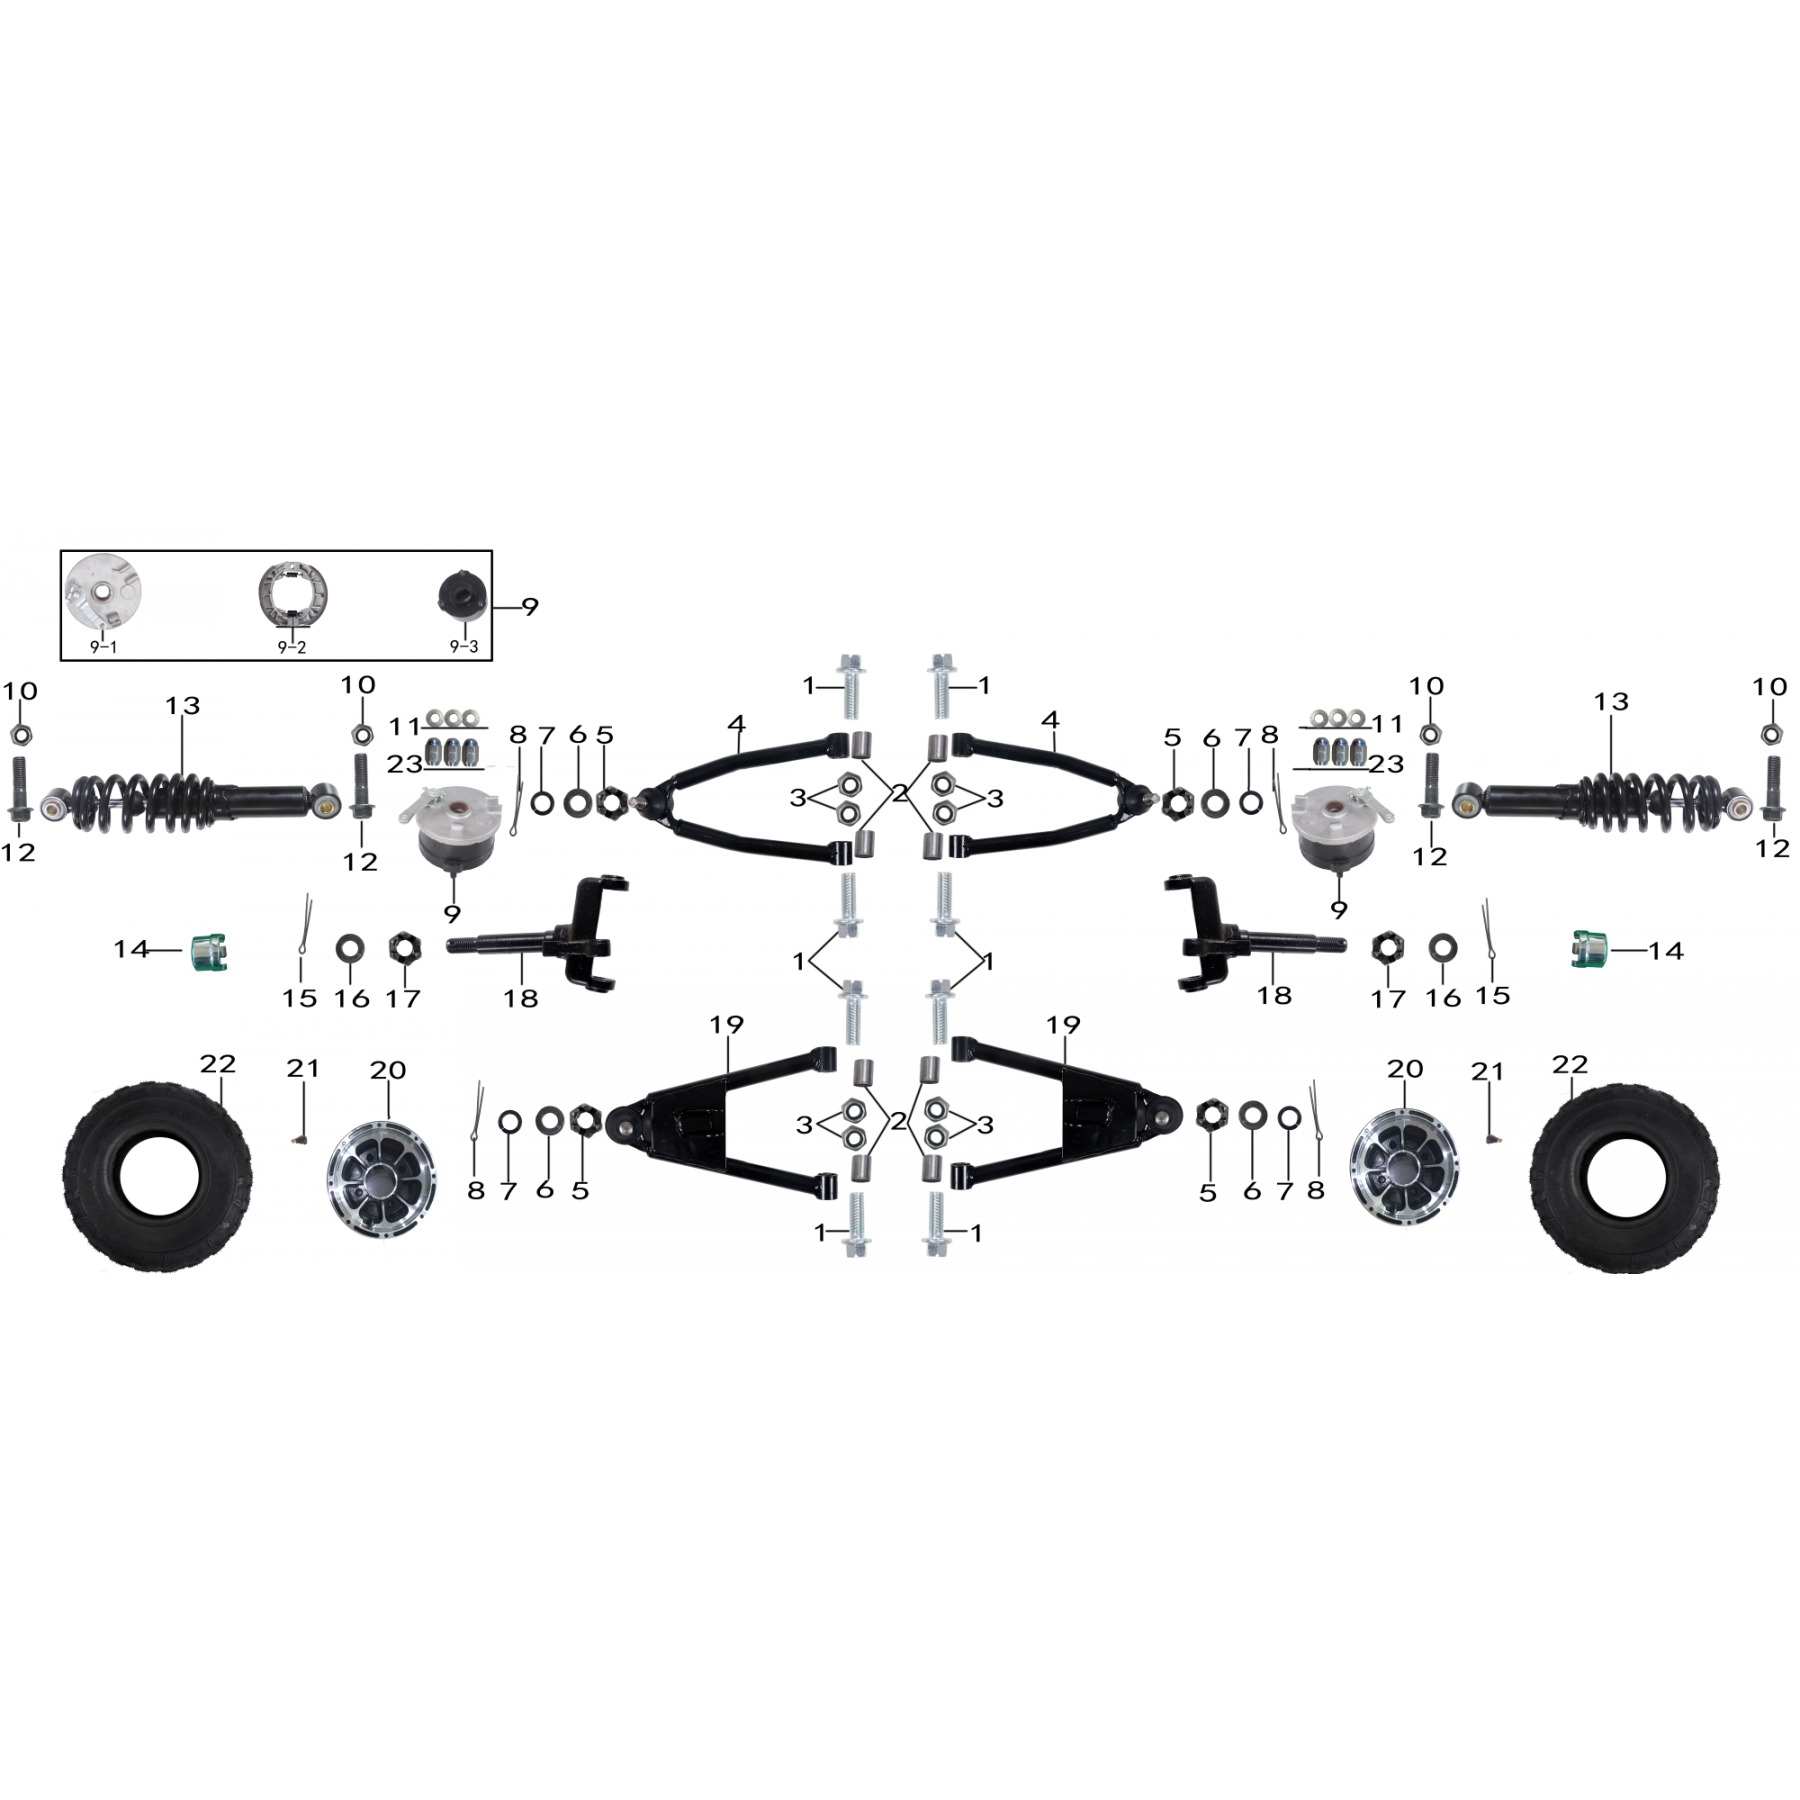 front and suspension parts for atv taotao NEW CHEETAH - VTT LACHUTE